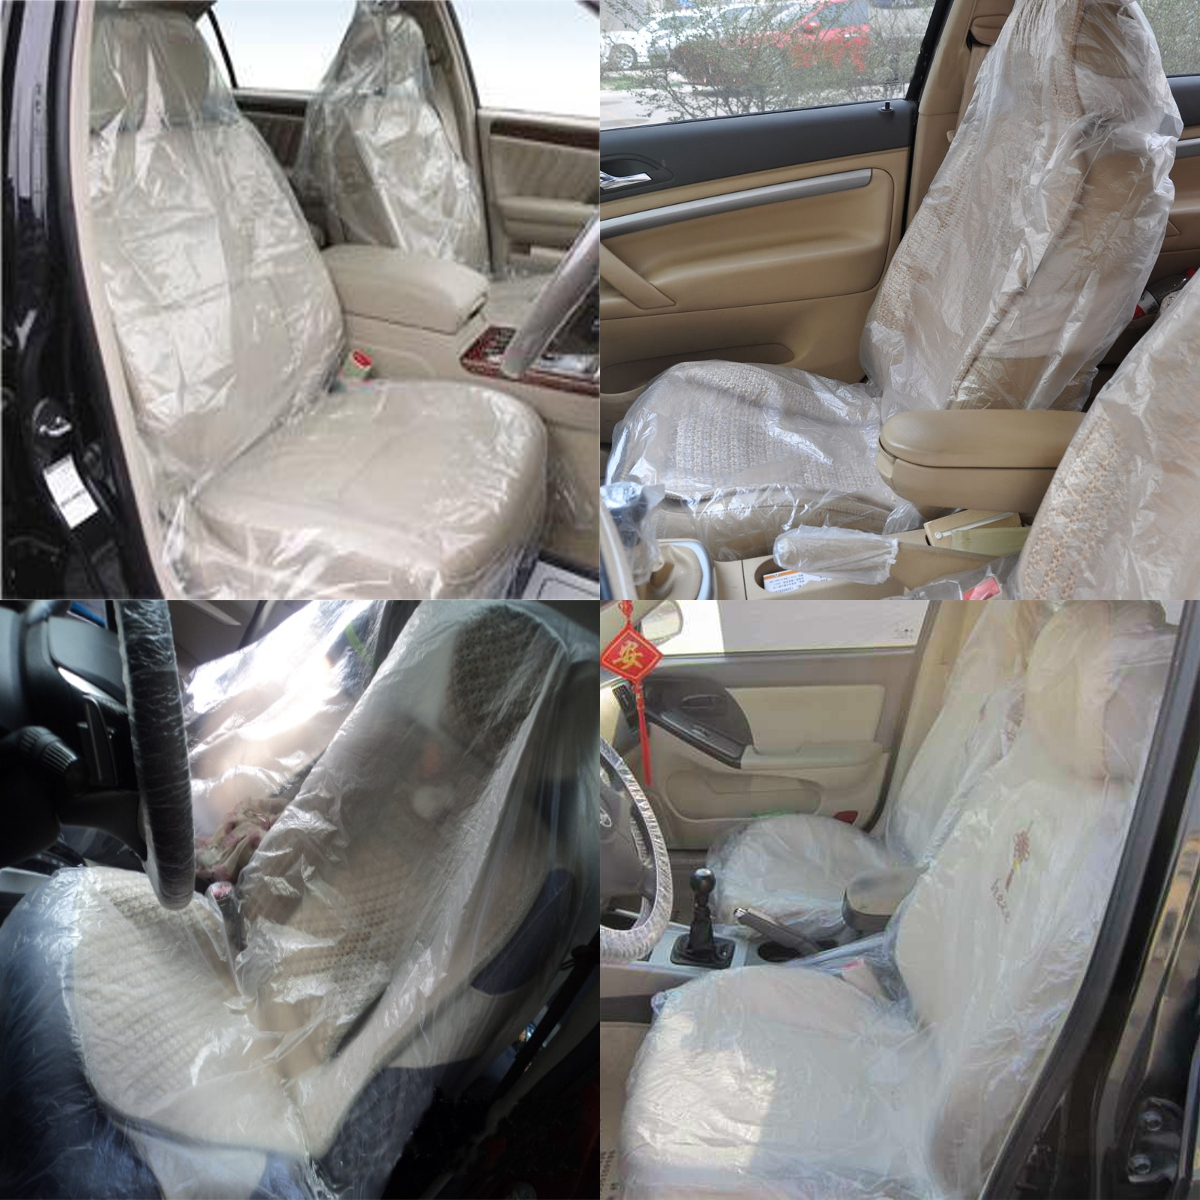 ytrew 100x Car Disposable Plastic Soft Seat Cover Waterproof